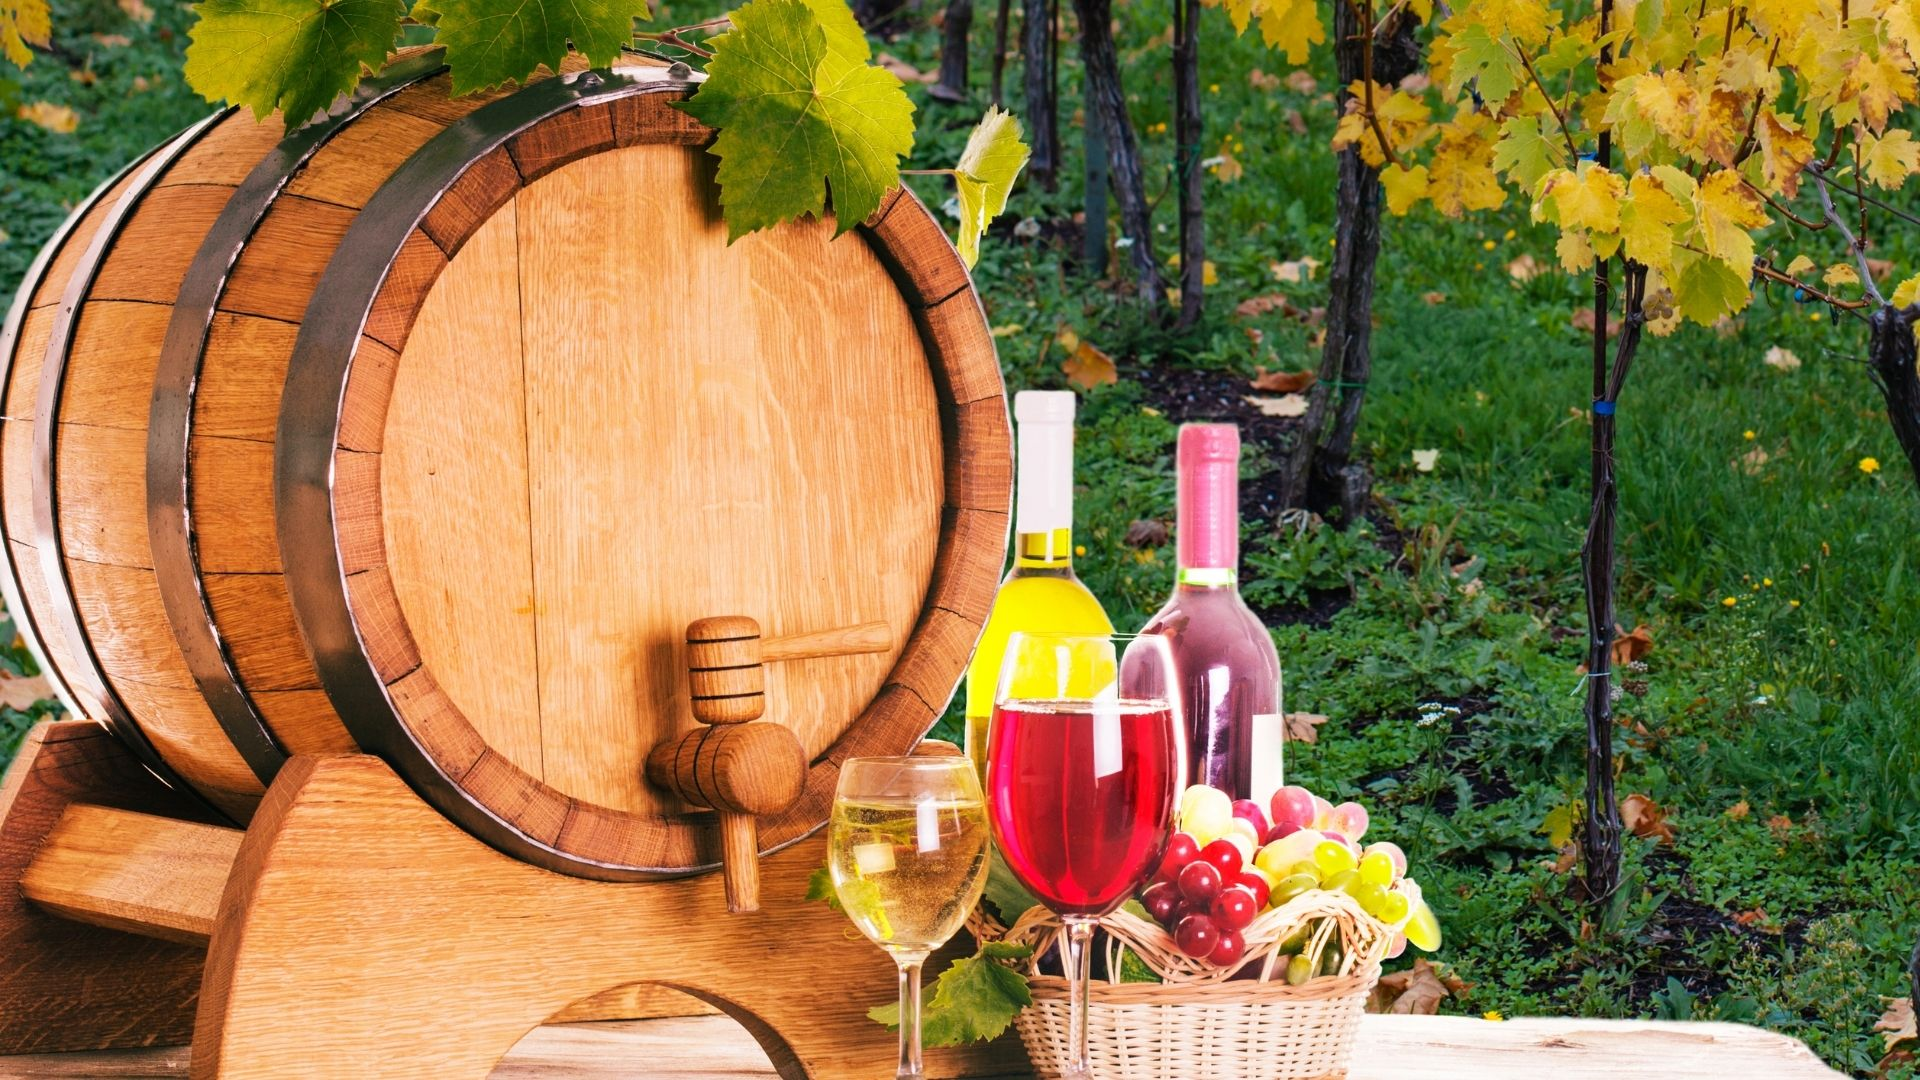 Wine glasses, wine bottles, fruit and barrel at a winery